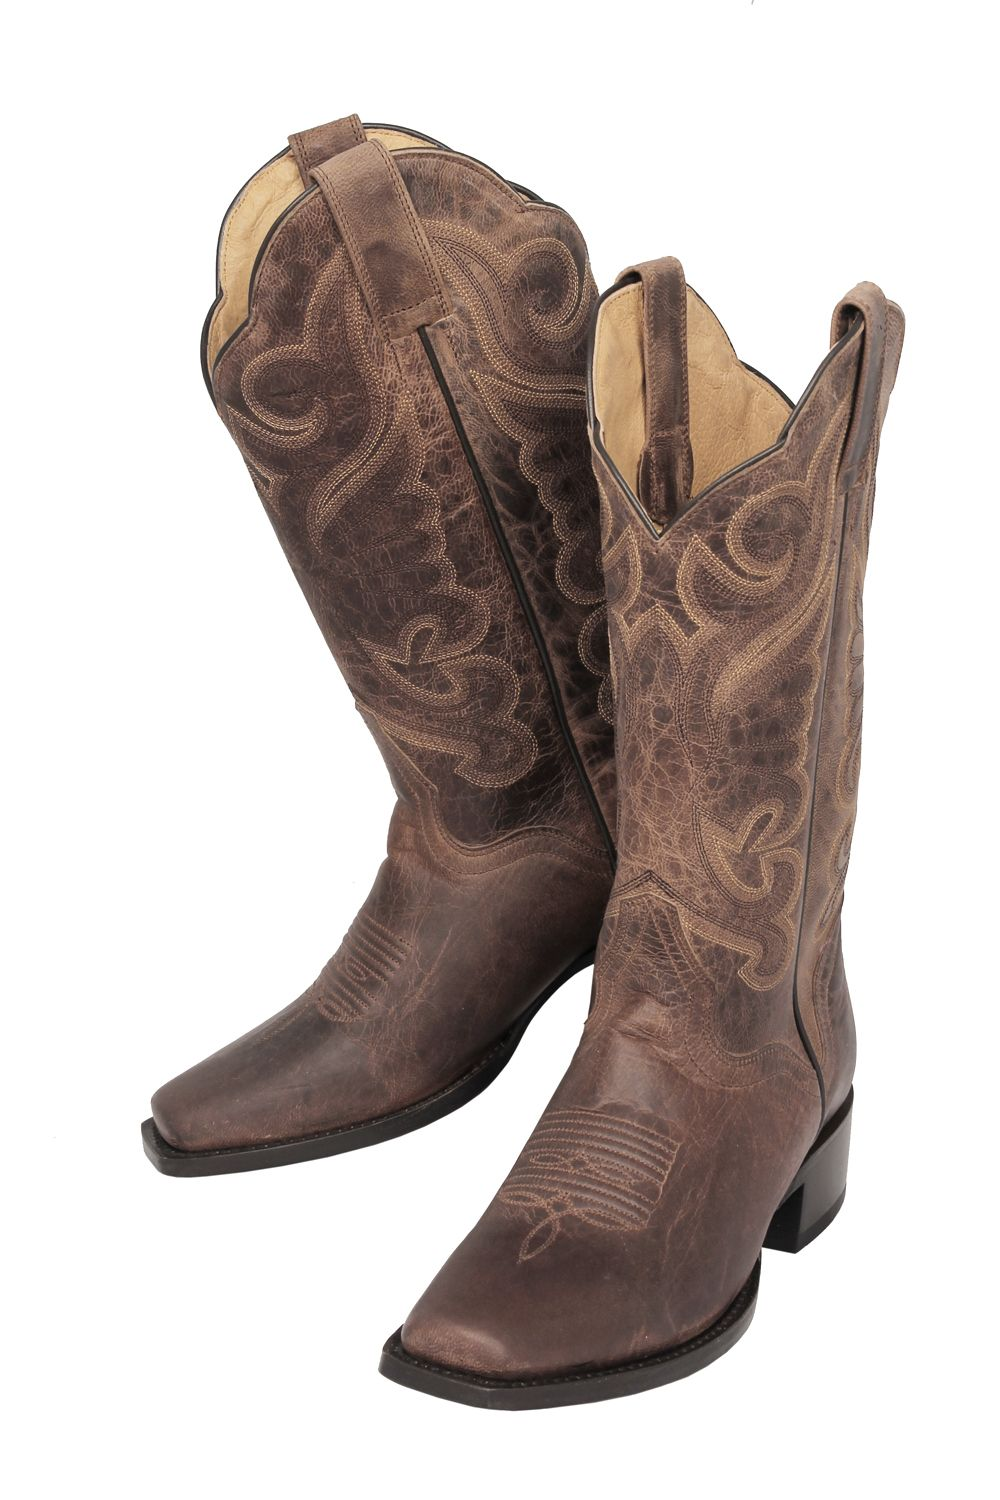 290e0e03efa8 This is the best place to get boots! Nashville! Buy one get TWO free ...